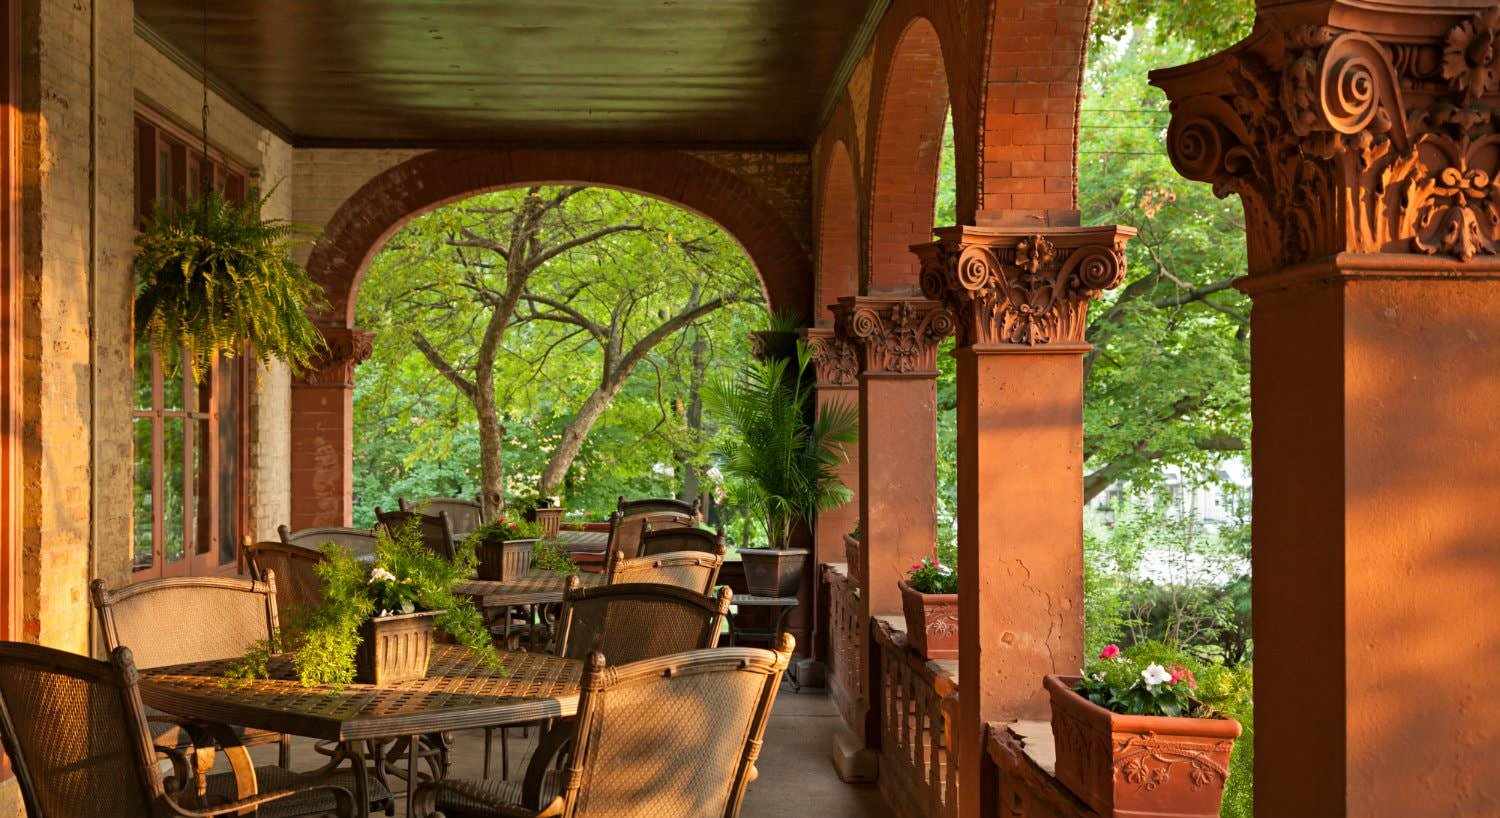 Covered porch with wide arched openings and thick reddish carved posts, and several patio tables and chairs